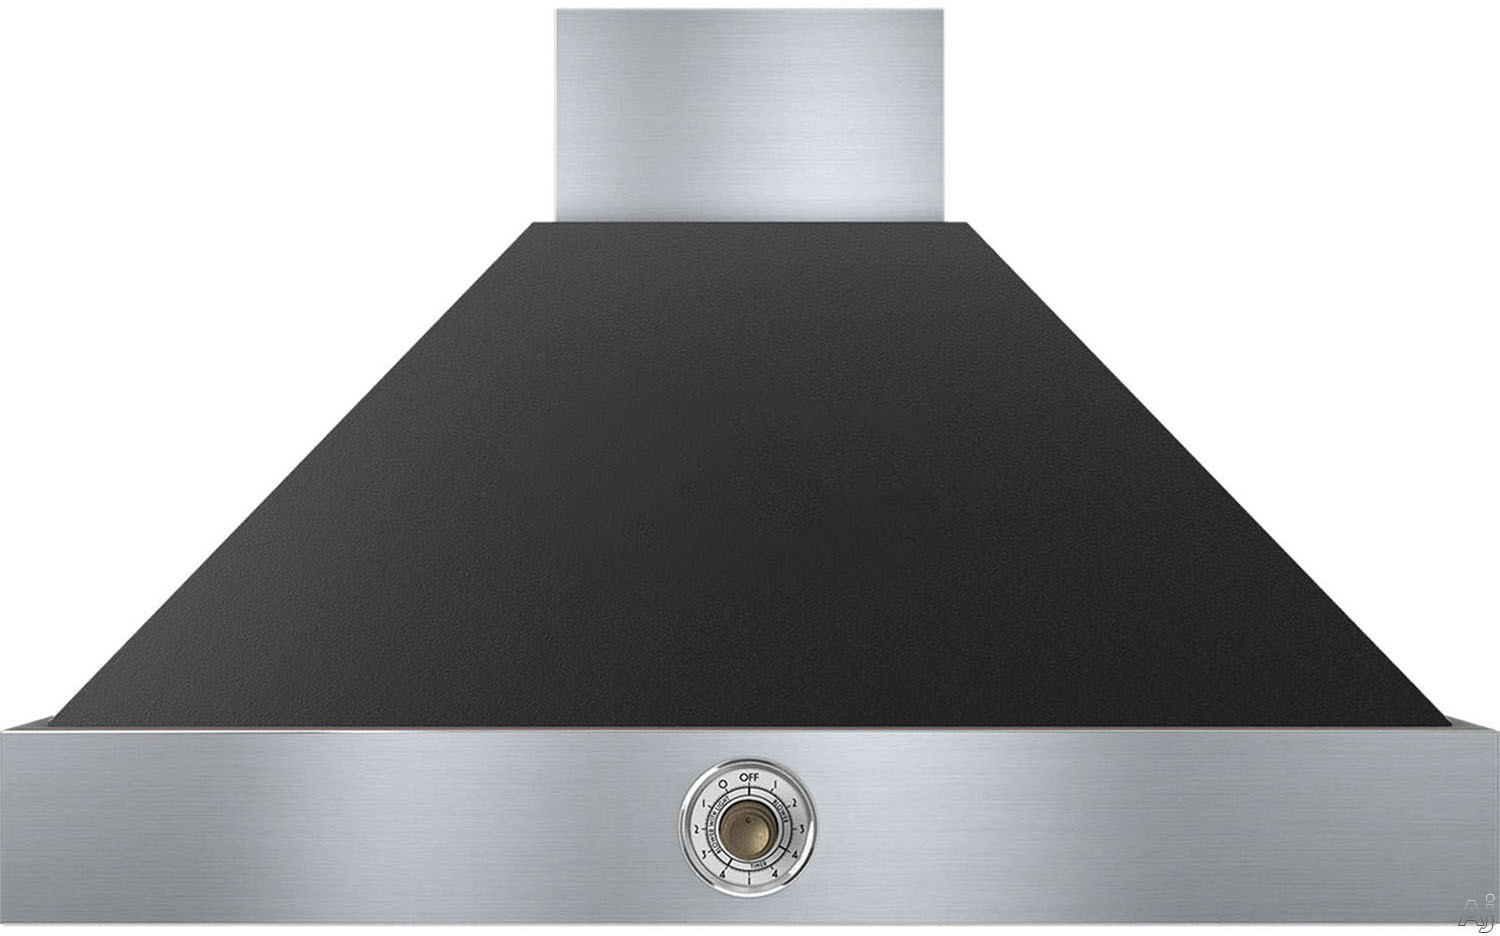 Superiore Deco Series HD361ACNB 36 Inch Wall Mount Canopy Hood with 600 CFM Blower, 4 Speed Settings, 3 Dishwasher Safe Baffle Filters, 2 Halogen Lights, 58 dBA Noise Level and Automatic Shut-Off: Bla